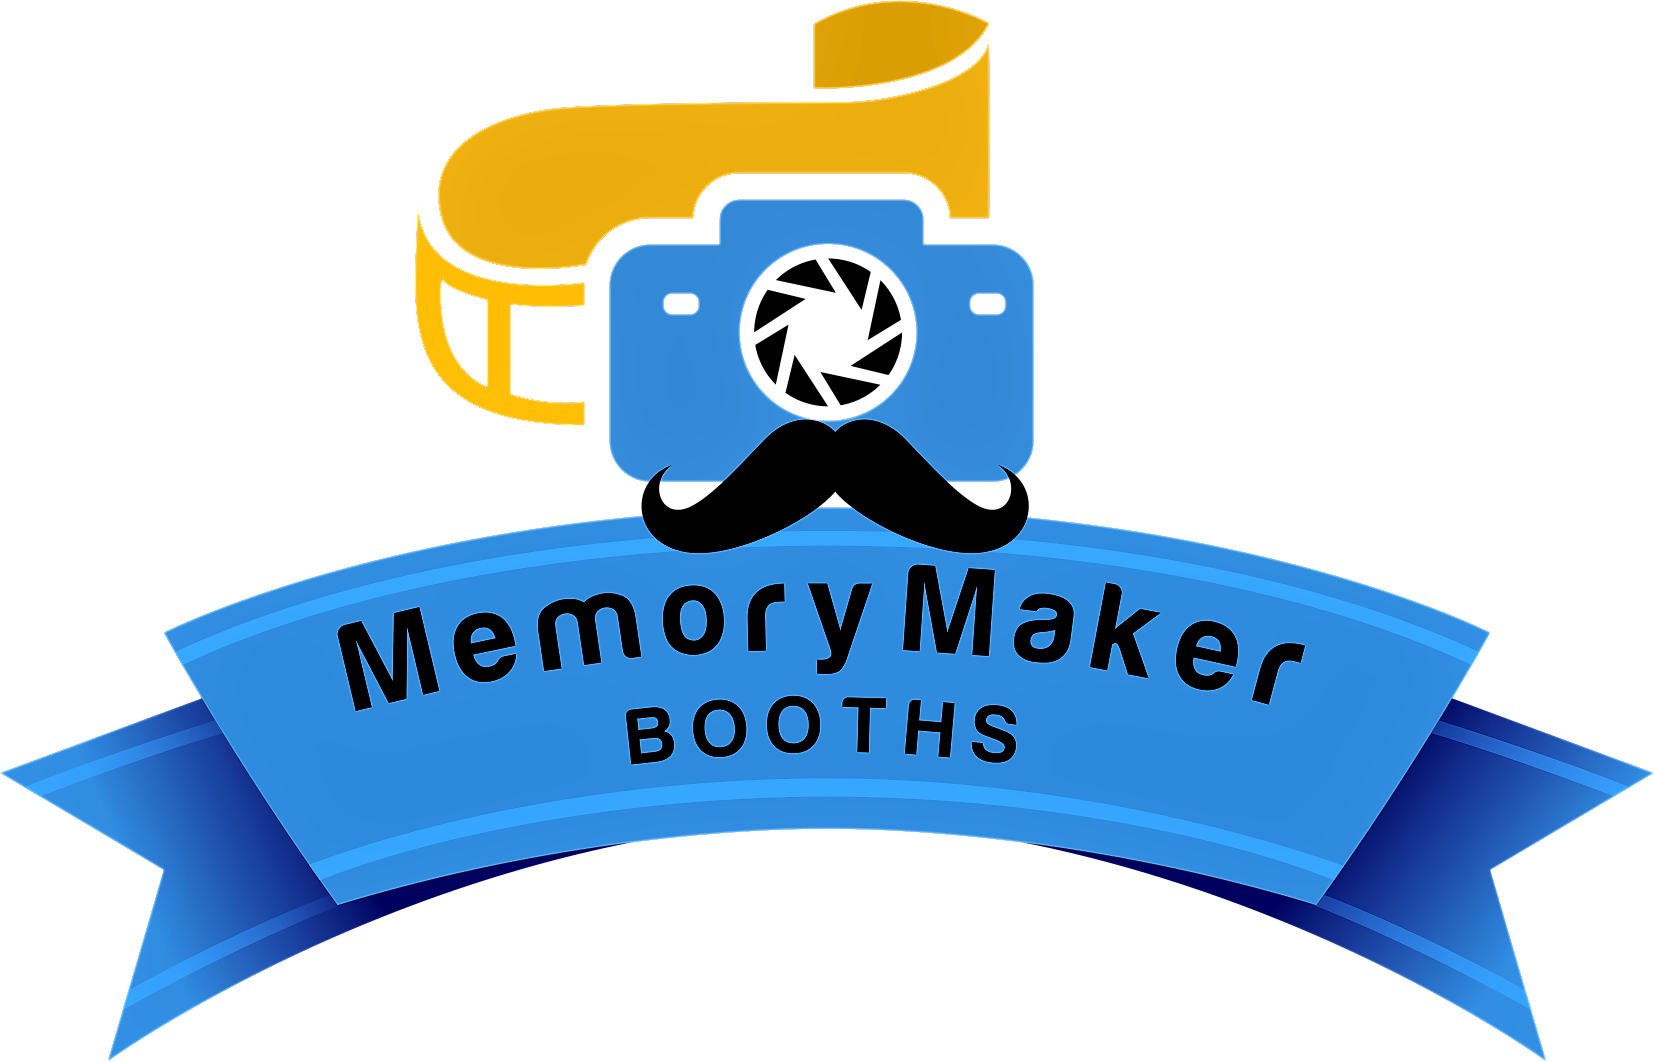 Memories clipart thanks for memory. Best photo booth rental